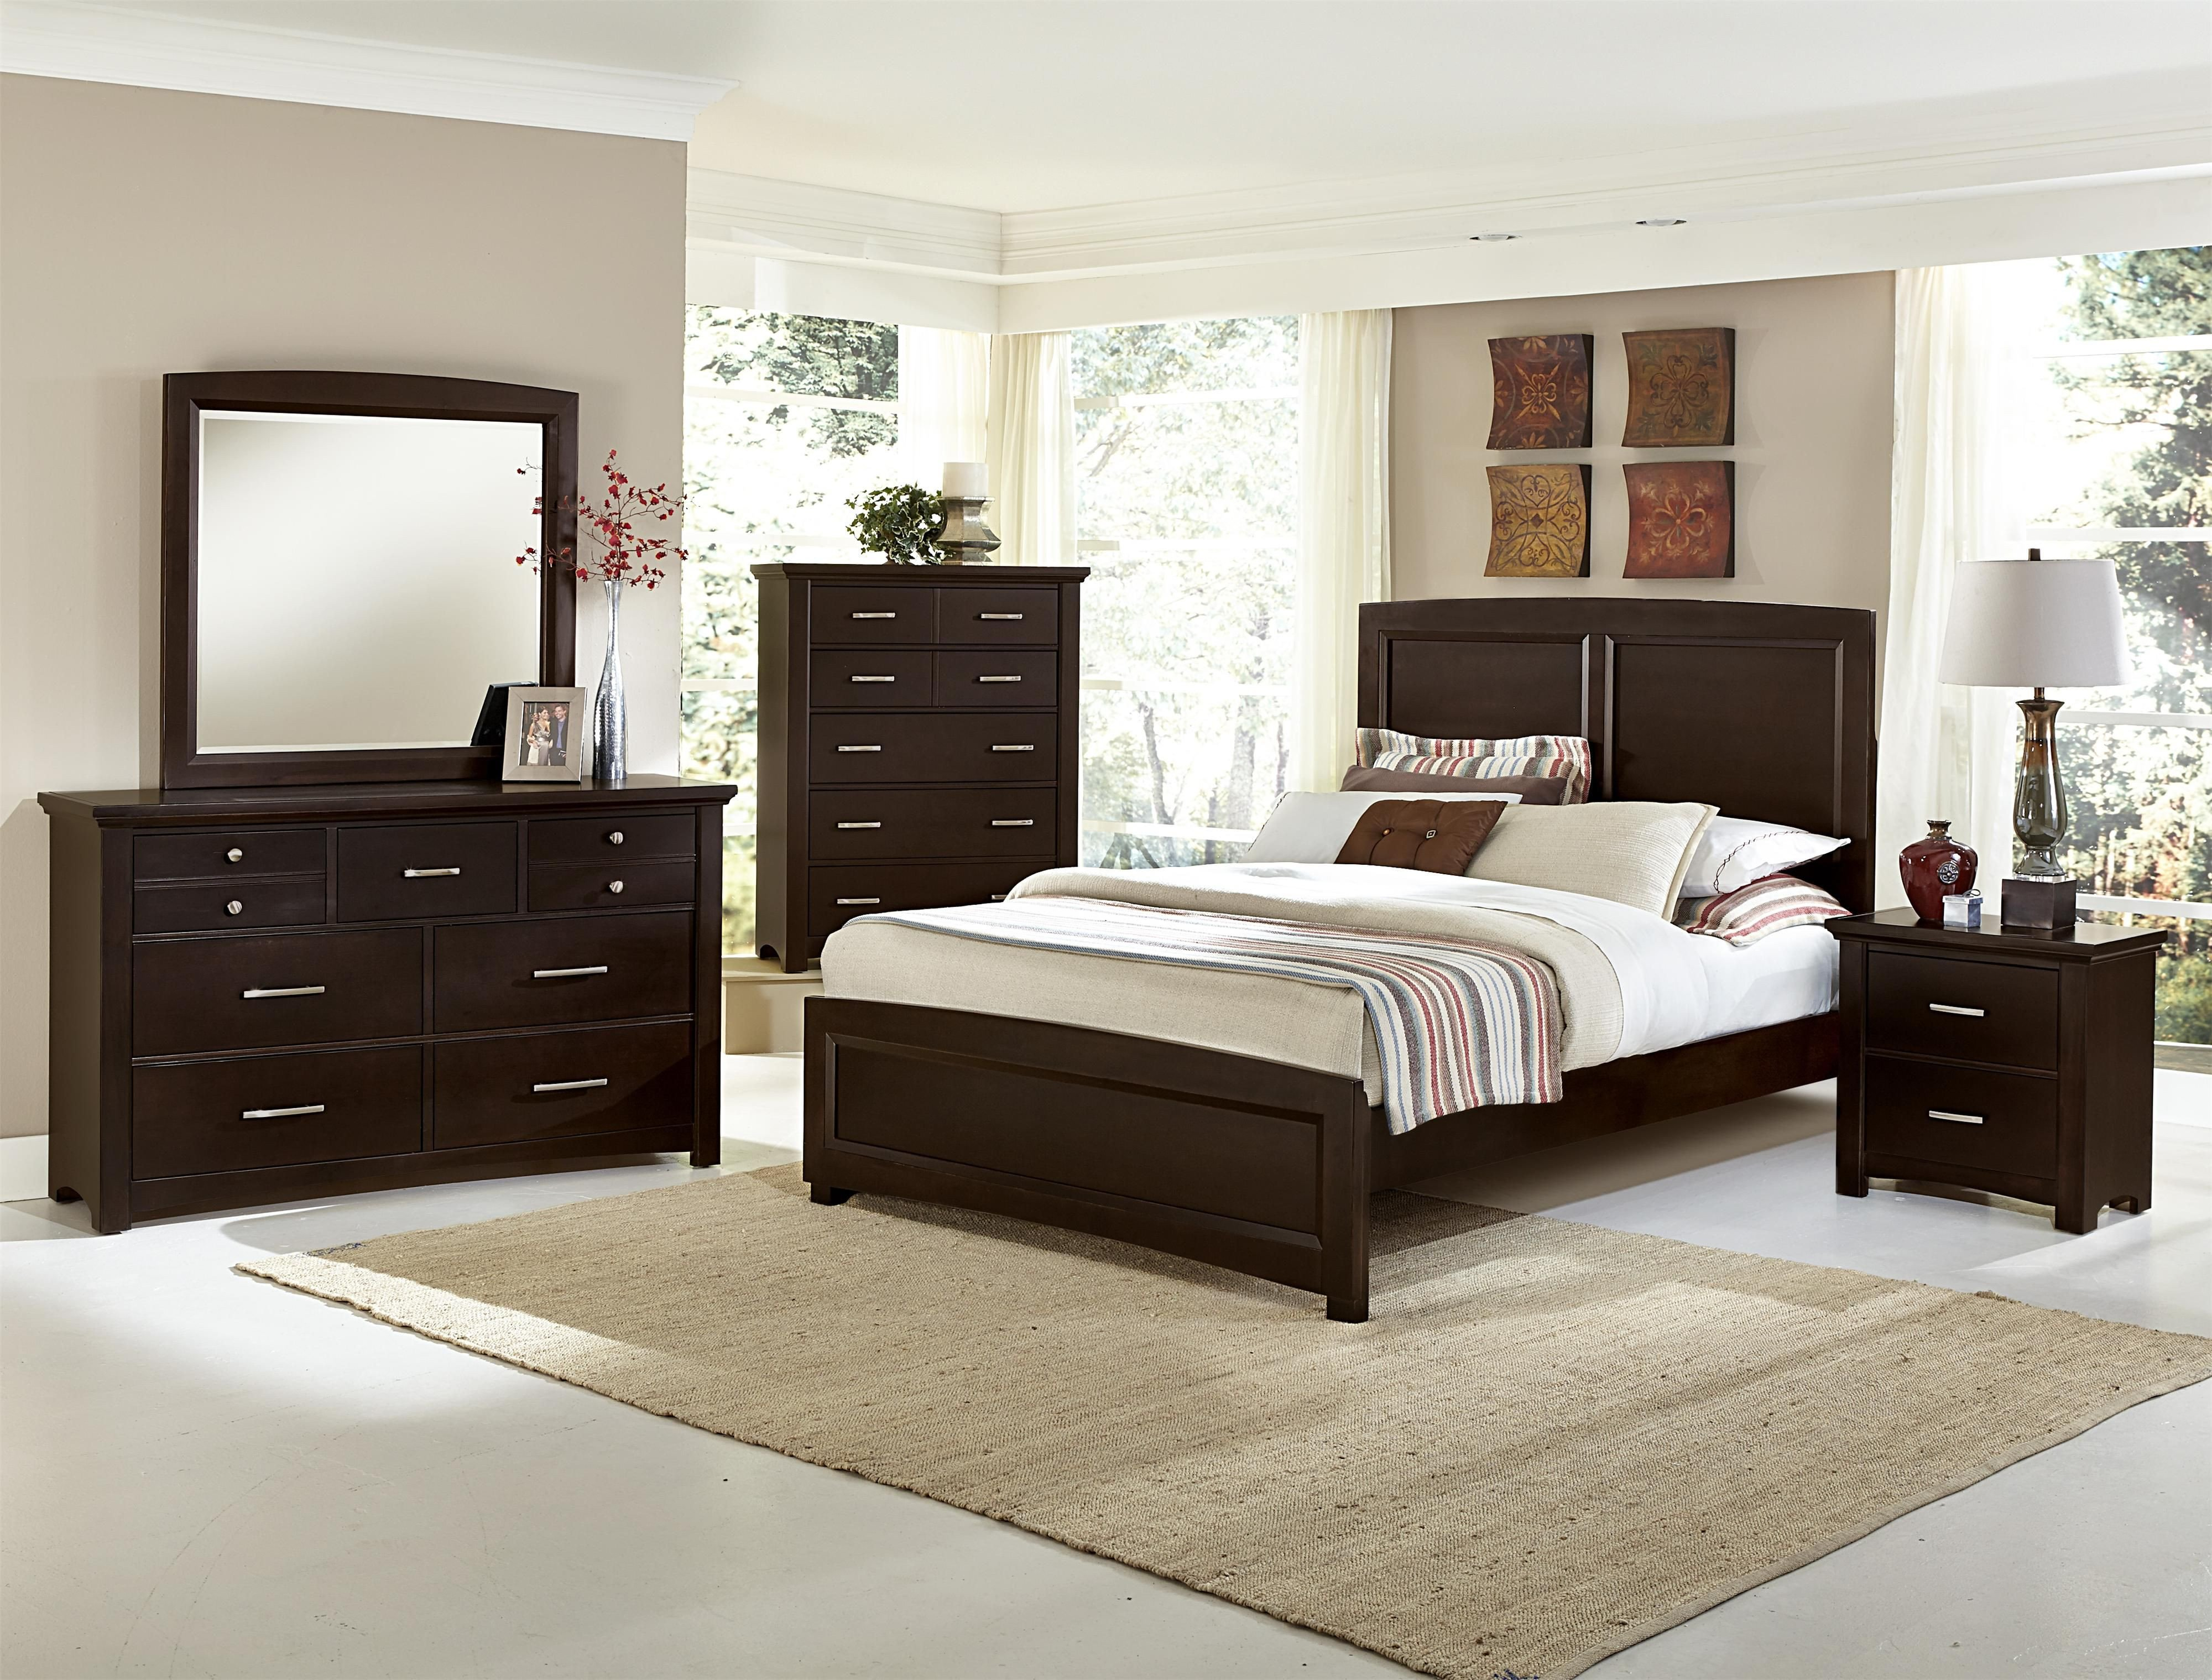 Vaughan Bassett Bedroom Set Elegant Transitions Bb67 by Vaughan Bassett Darvin Furniture